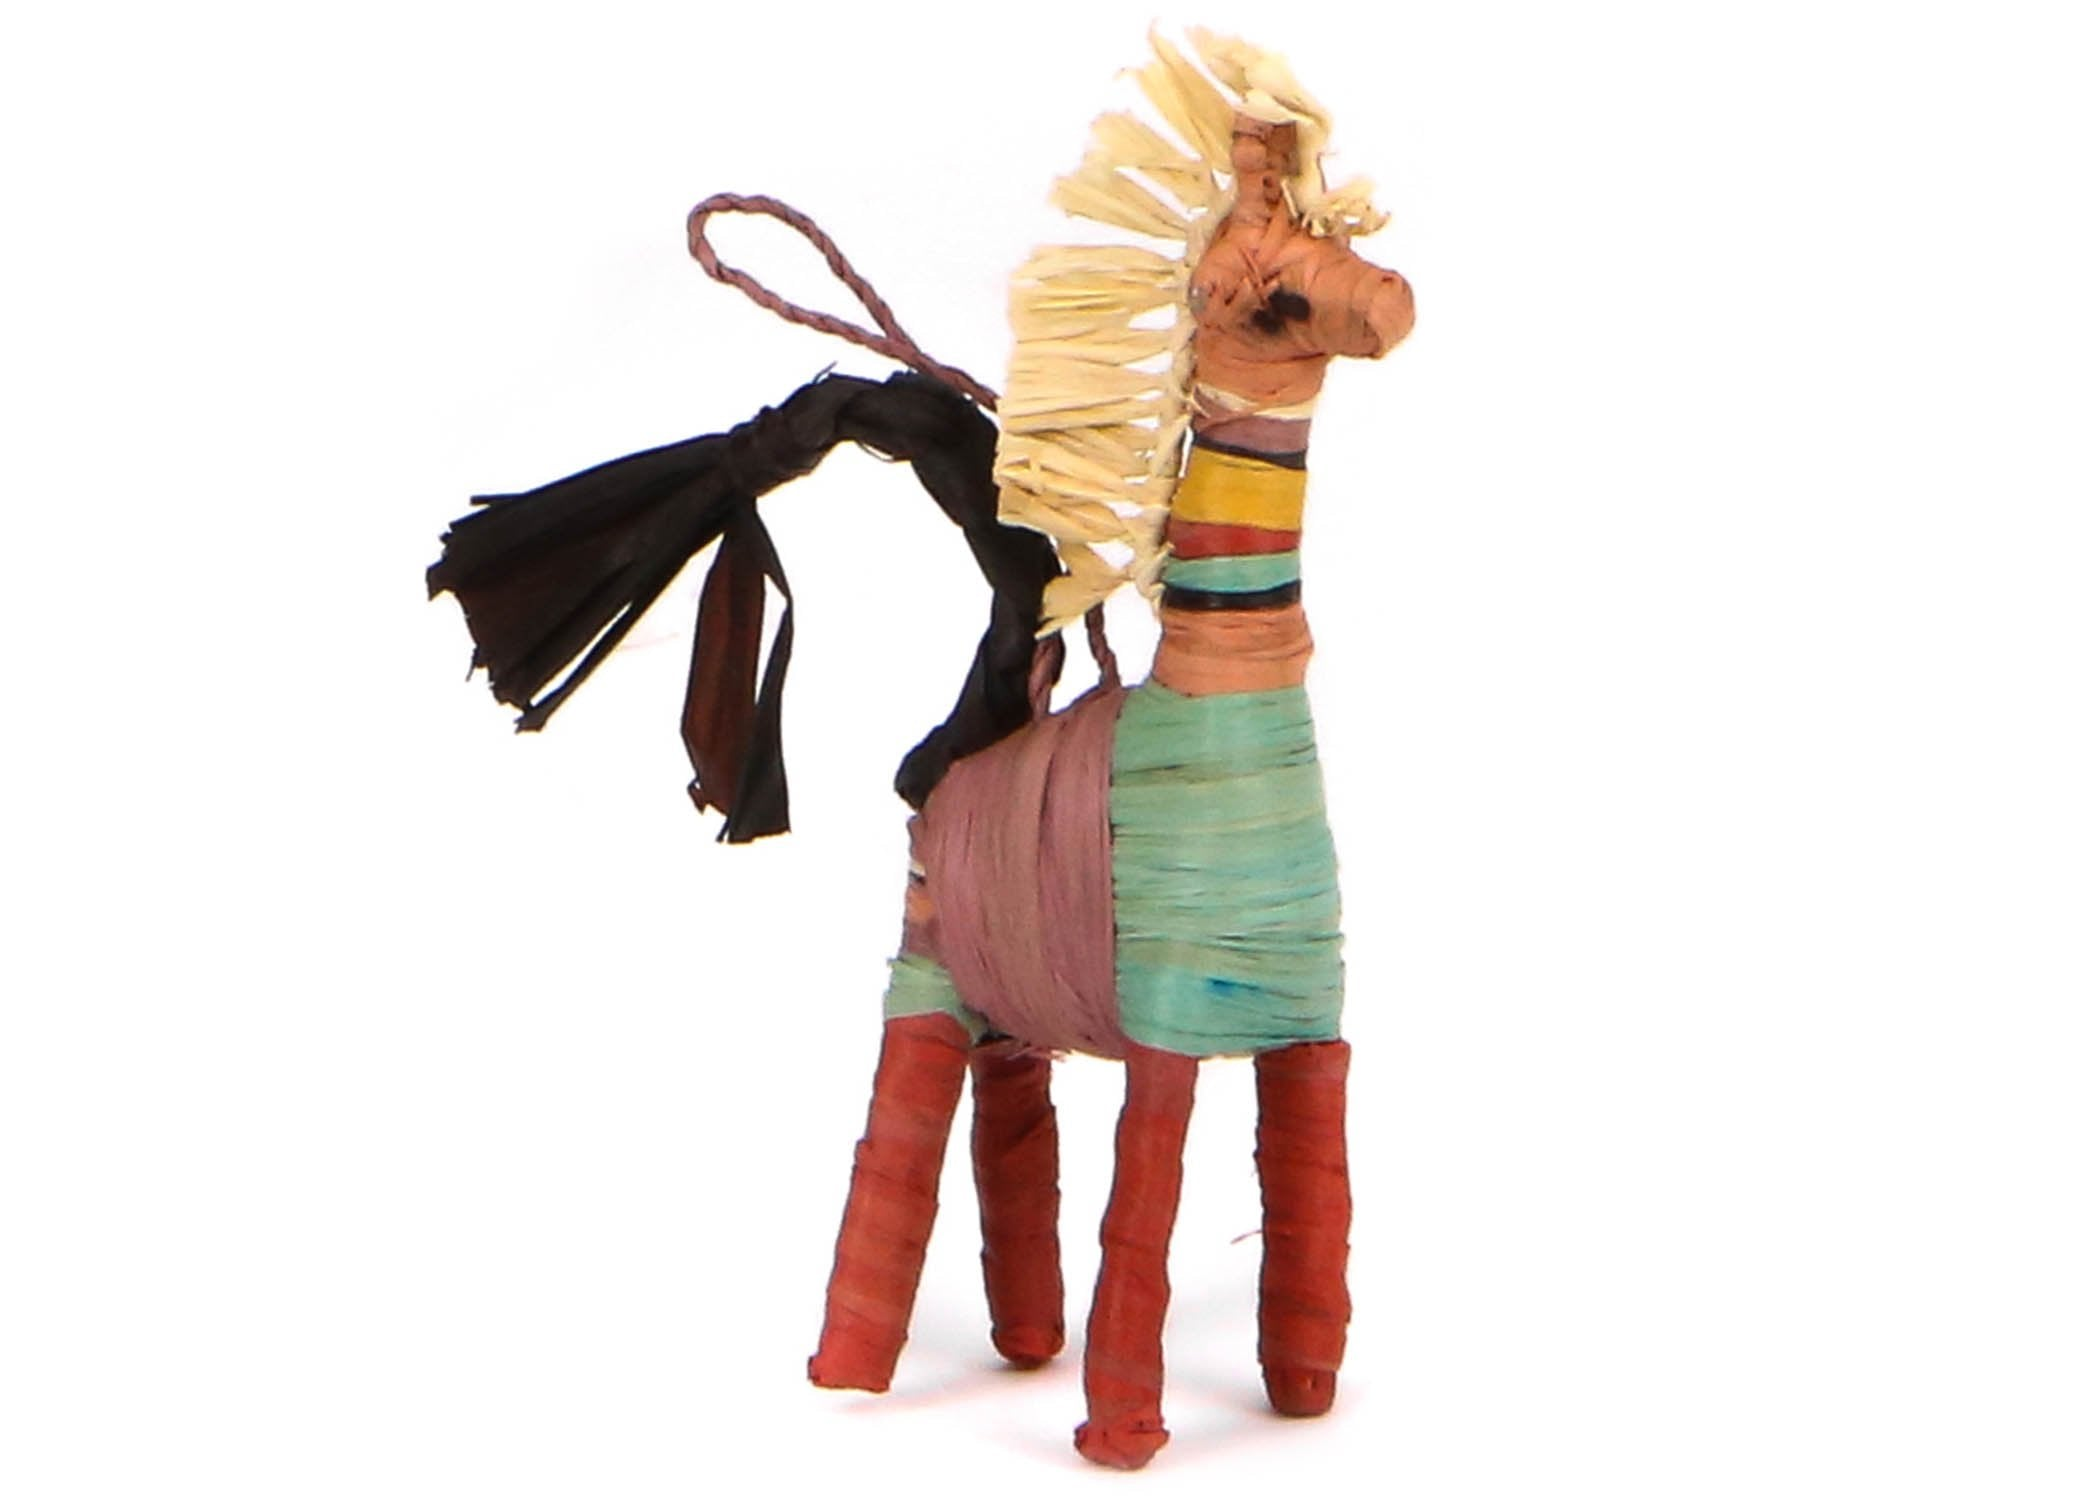 Colorful Raffia Giraffe Ornament - KAZI